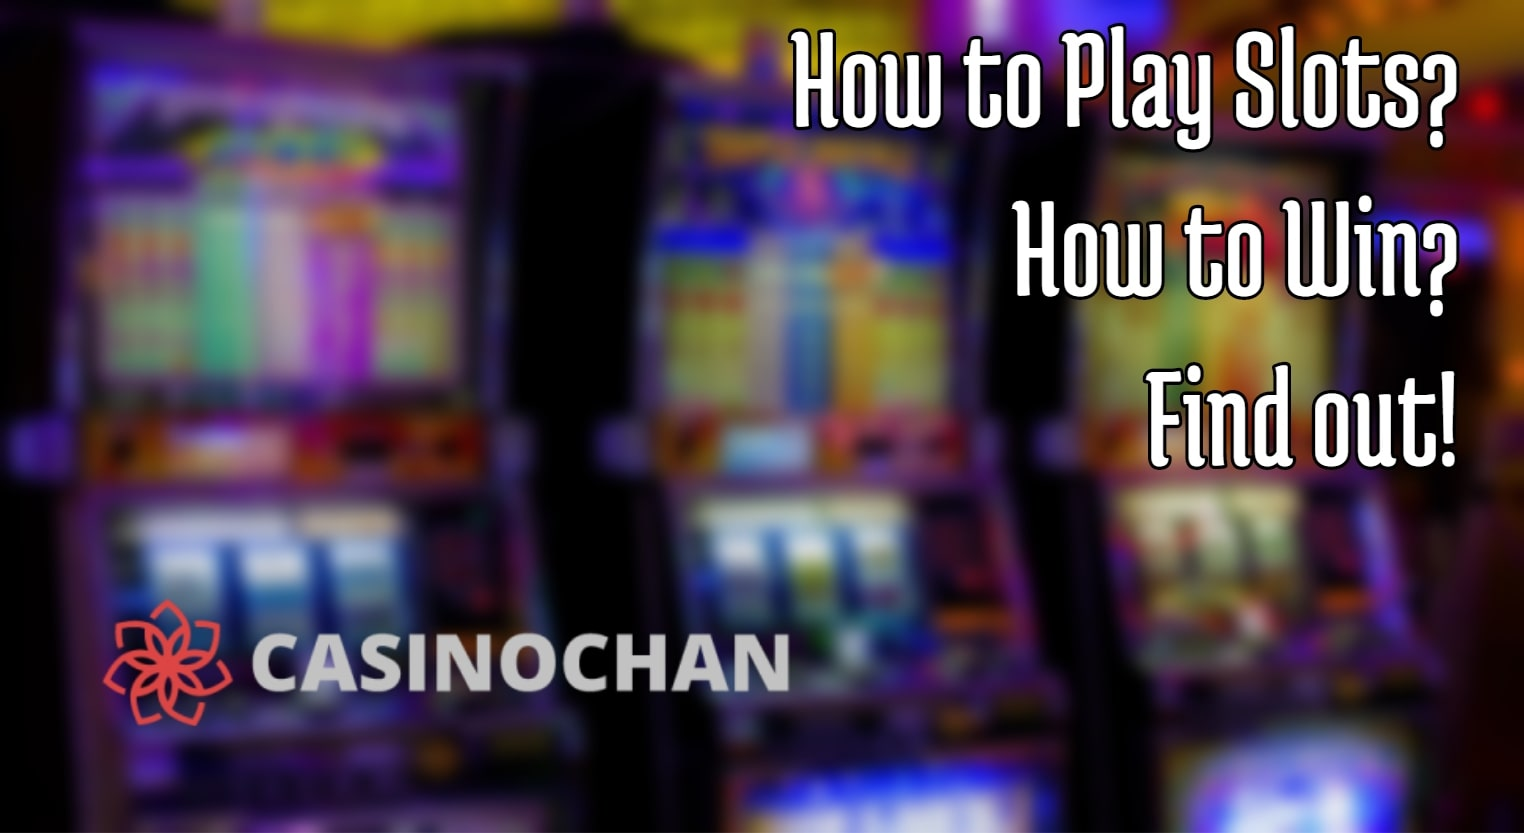 How to Play Slots Online and How to Win Playing Slots?